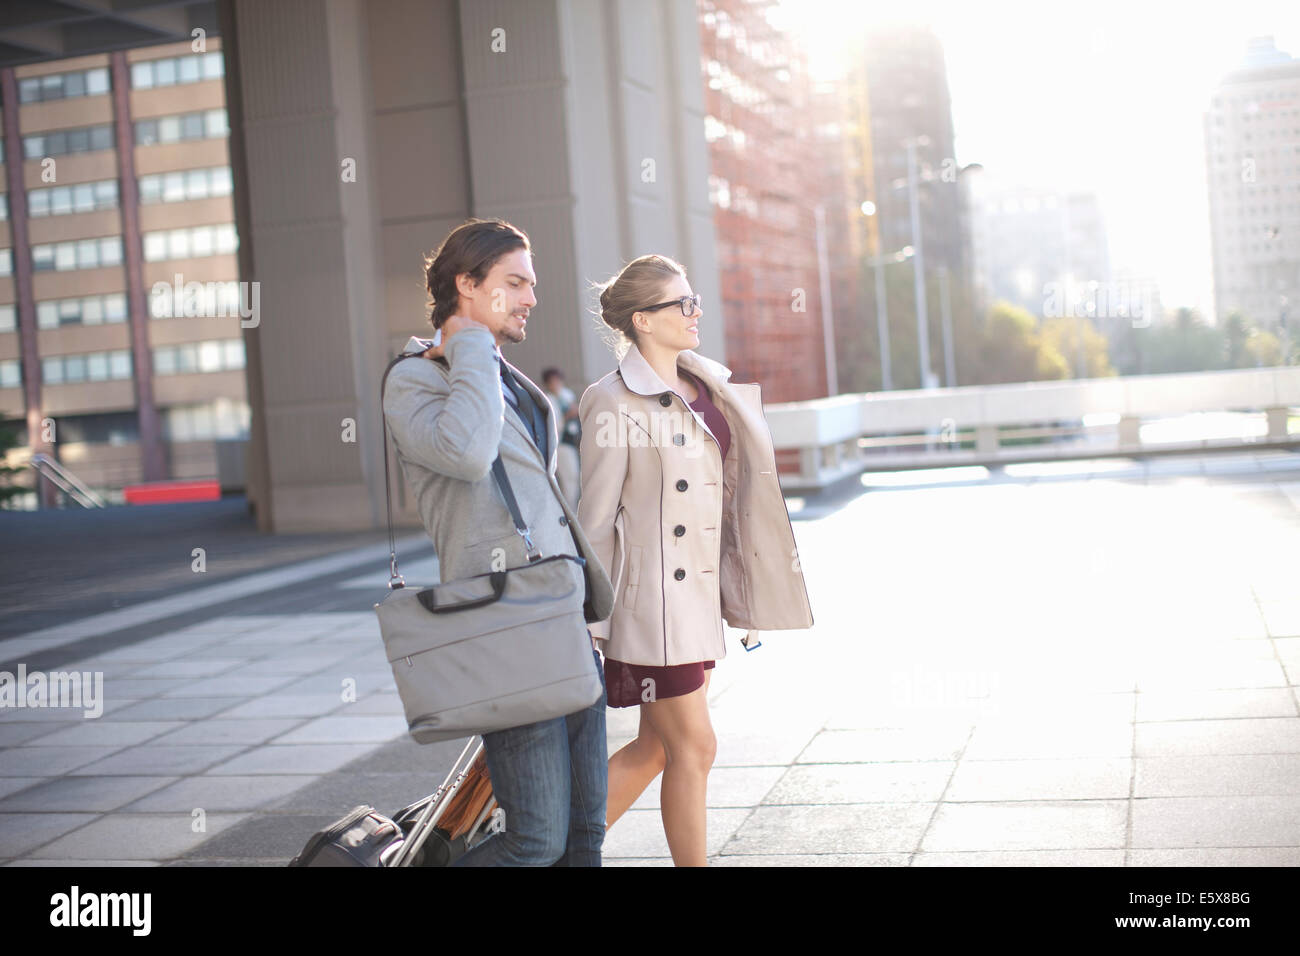 Businessman and woman walking across city rooftop parking lot - Stock Image